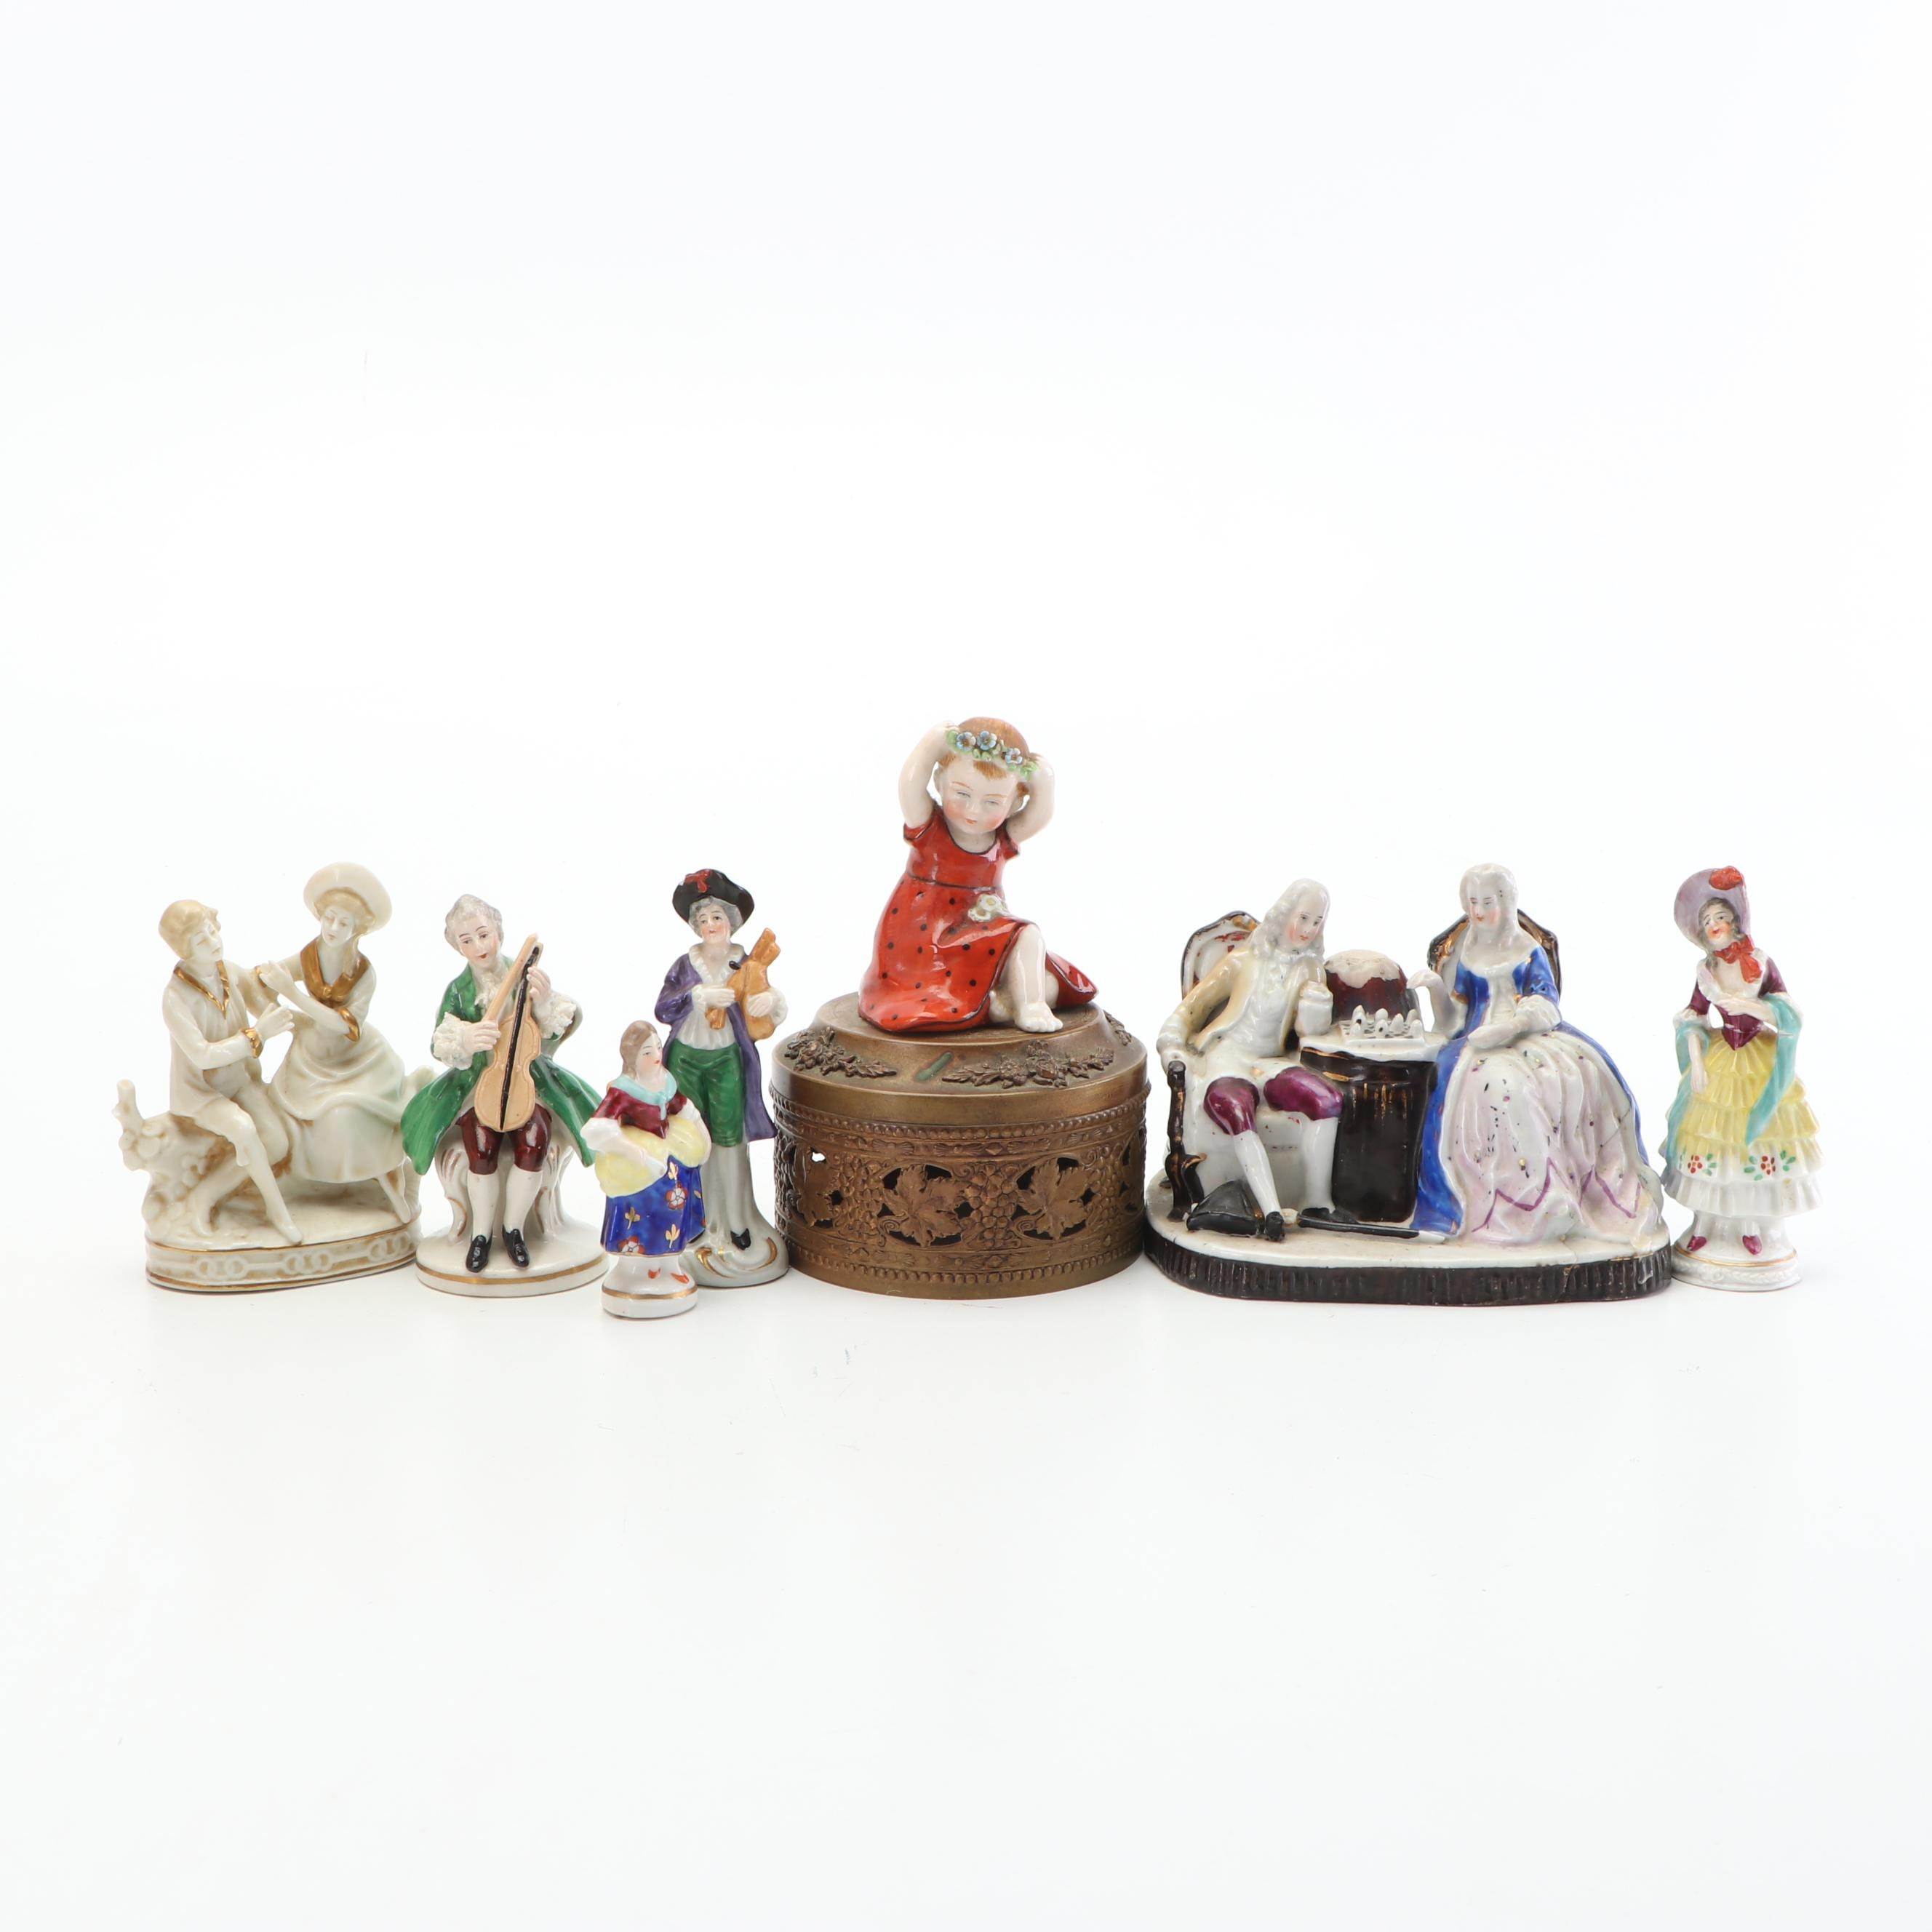 Open Work Trinket Box with Porcelain Figurines